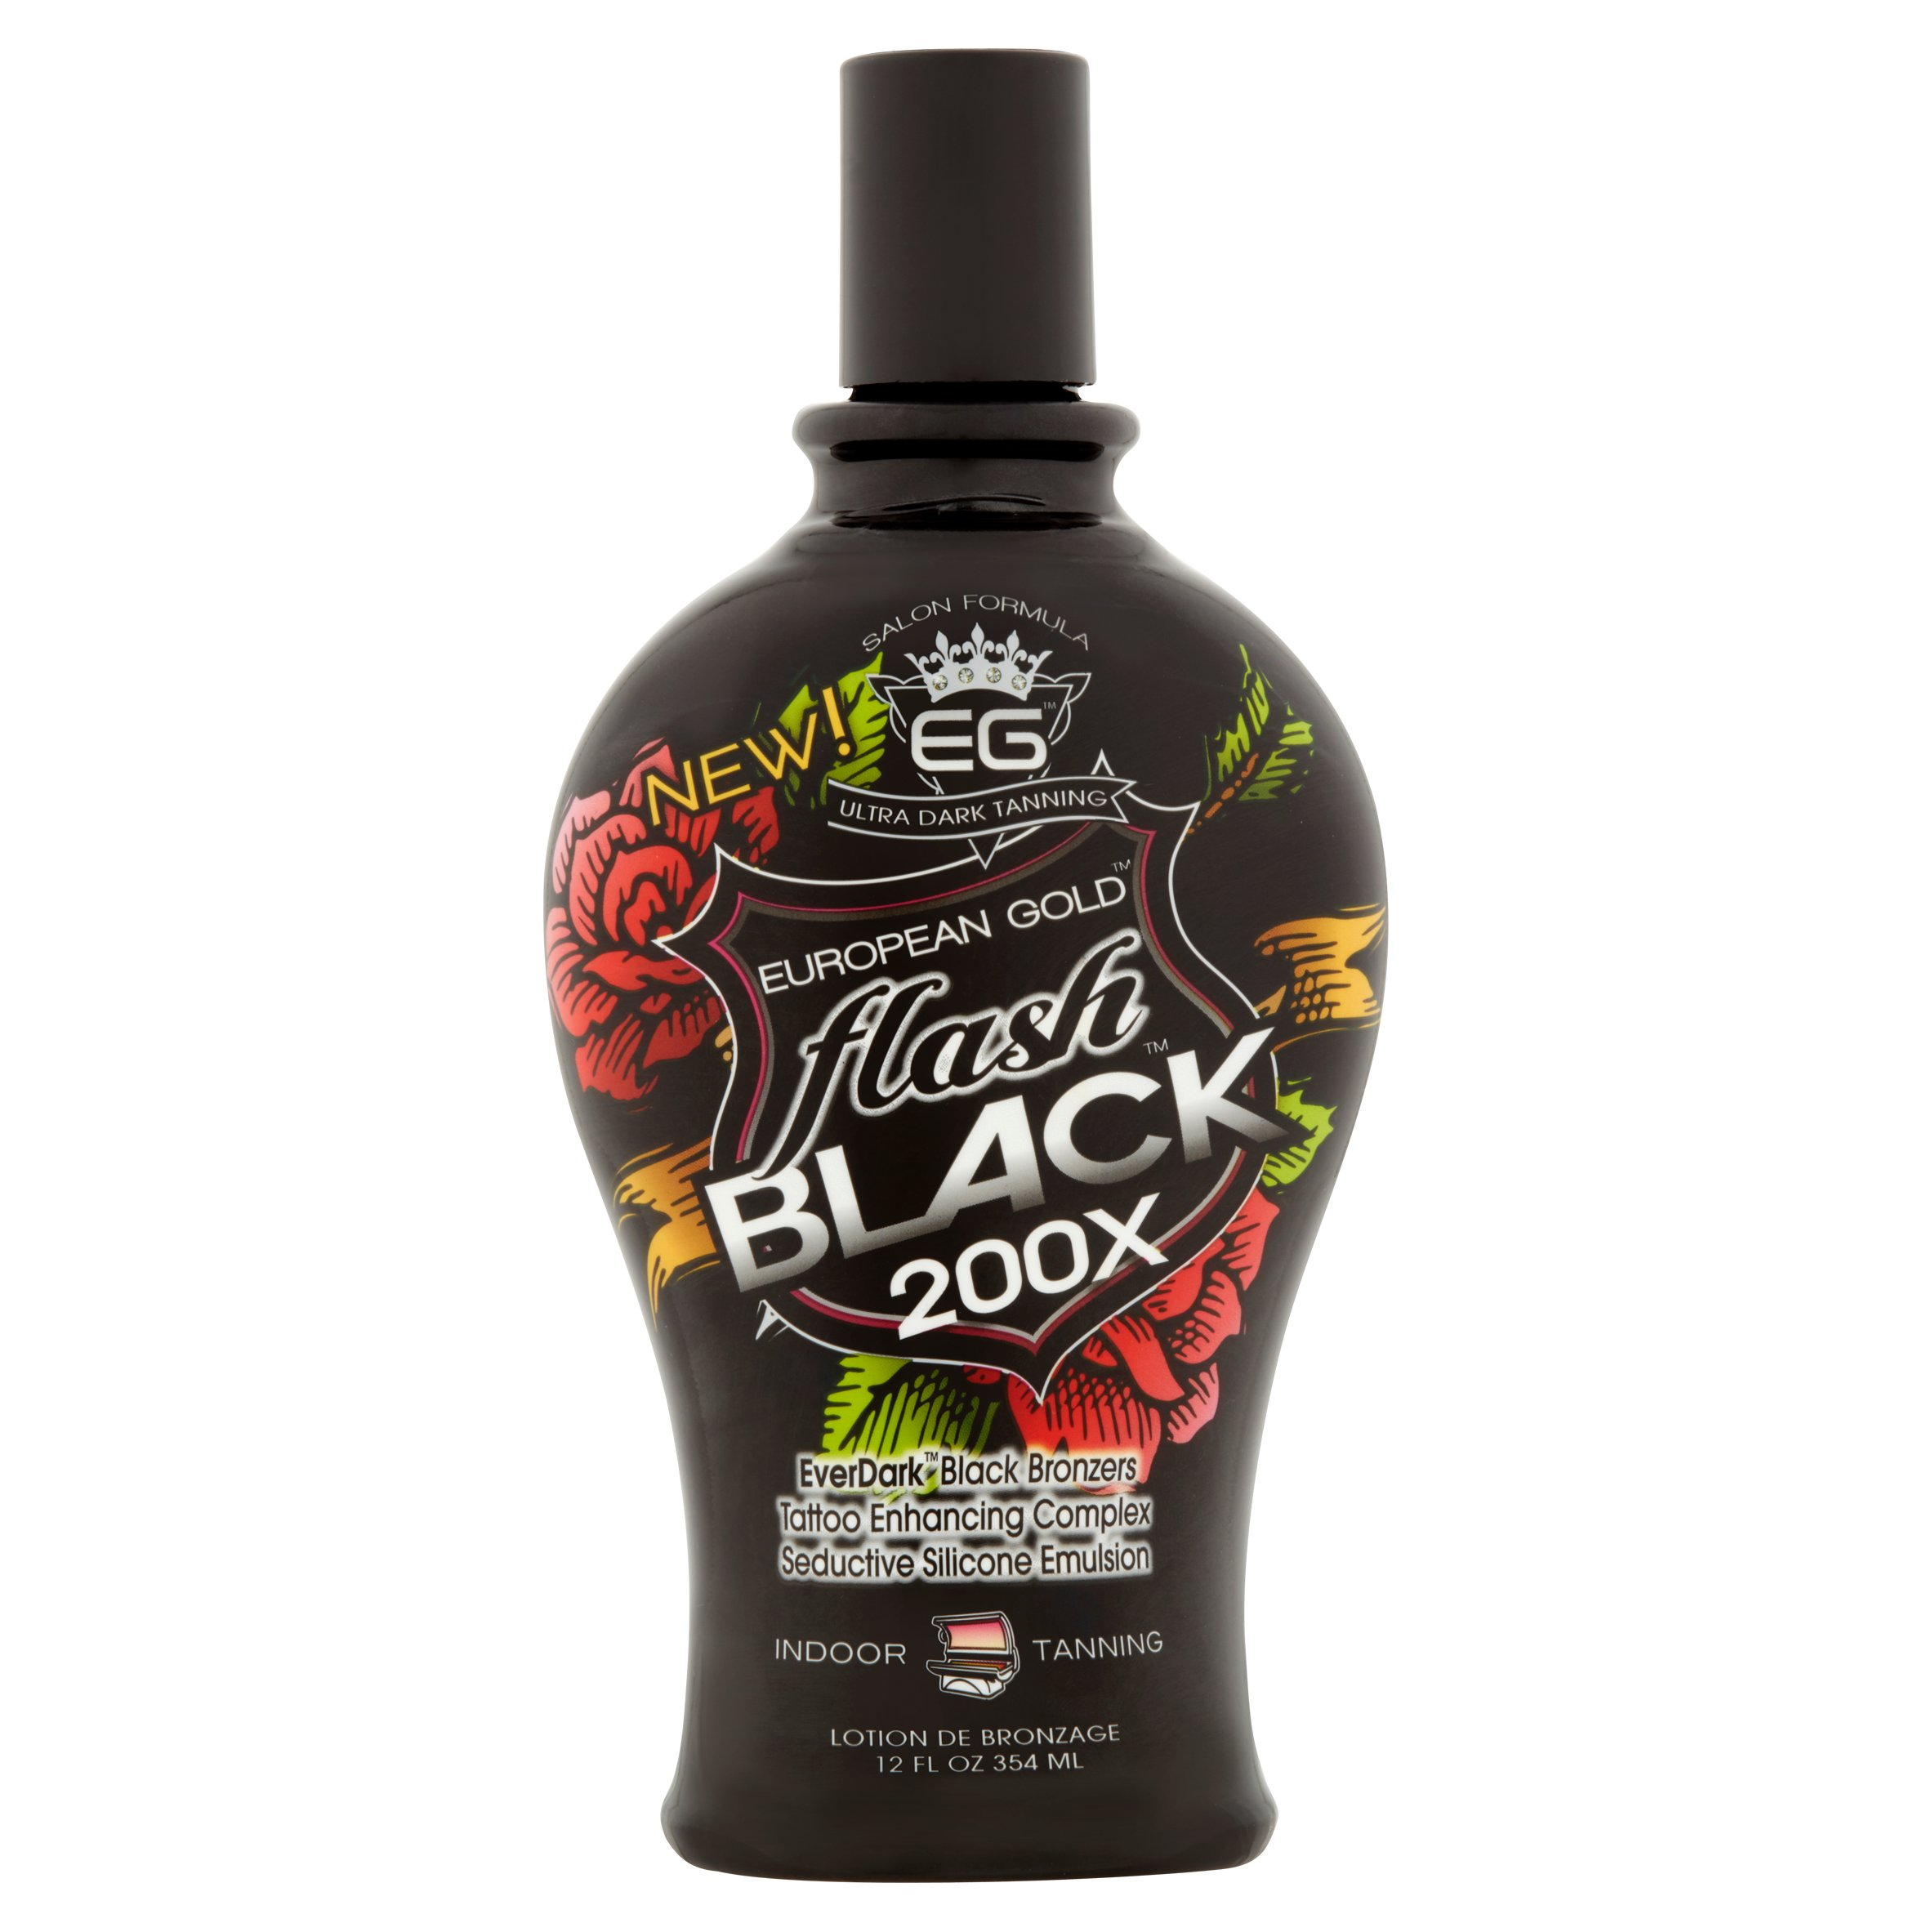 EG European Gold Flash 200X EverDark Black Bronzers Indoor Tanning Lotion, 12 fl oz